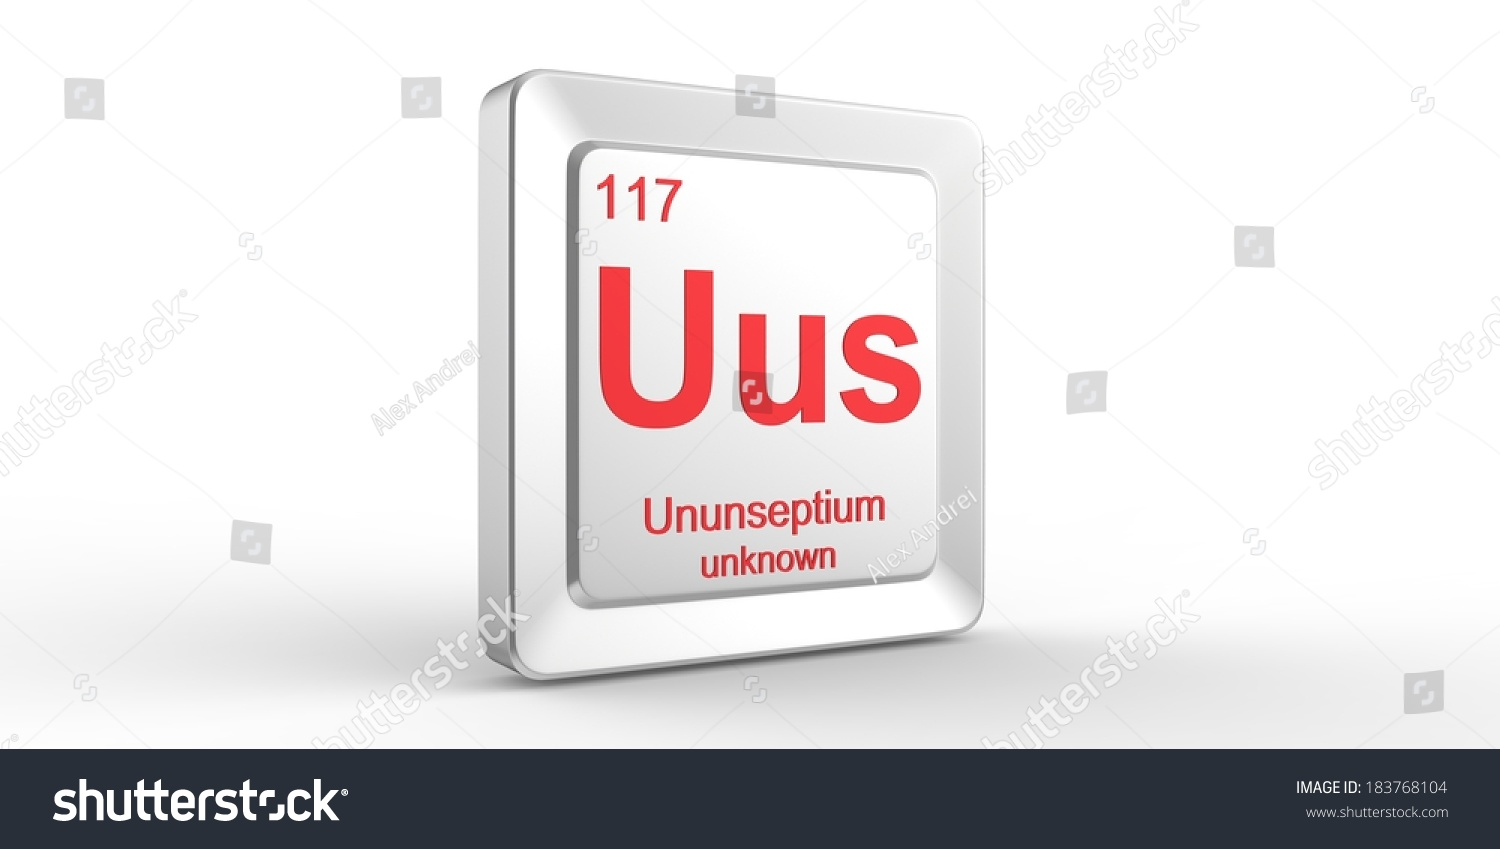 U symbol periodic table image collections periodic table images u symbol periodic table choice image periodic table images xe symbol periodic table choice image periodic gamestrikefo Image collections